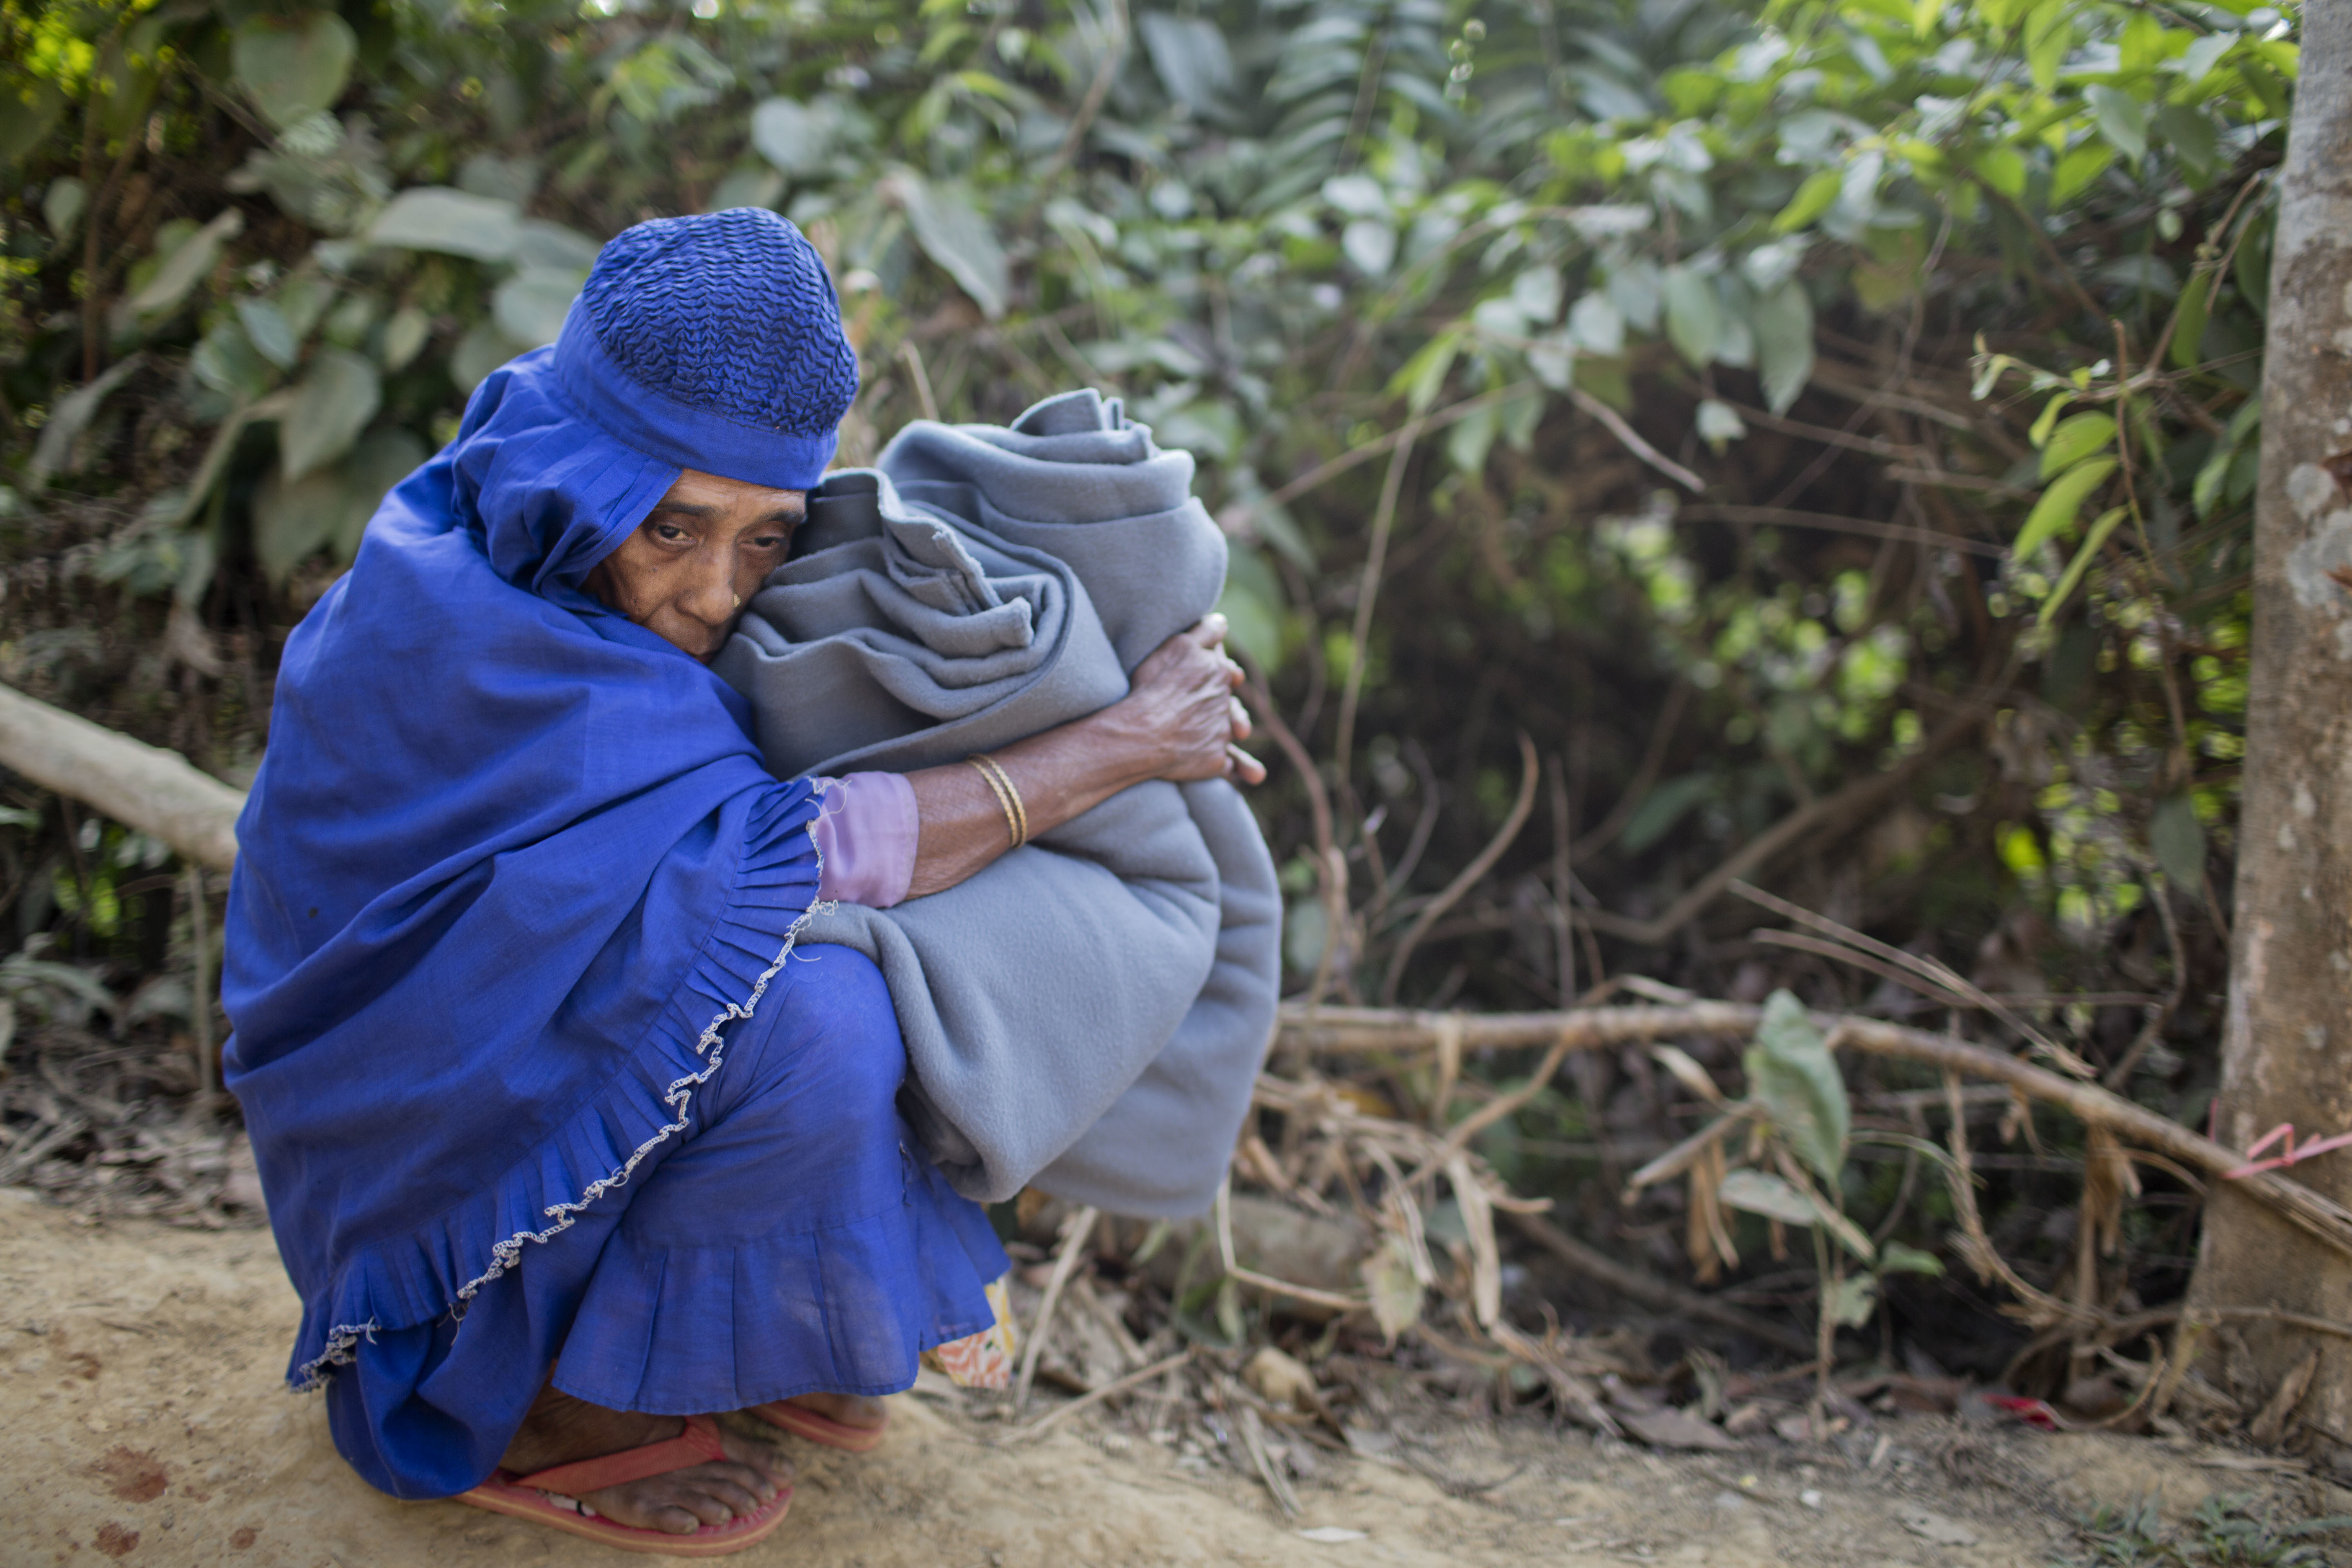 A Rohingya Muslim woman holds on to a blanket and rests on the road after collecting aid at the Kutupalong refugee camp in Ukhiya, Bangladesh, Dec. 21, 2017.  Hundreds of thousands of Rohingya people have crossed over from Myanmar into Bangladesh.